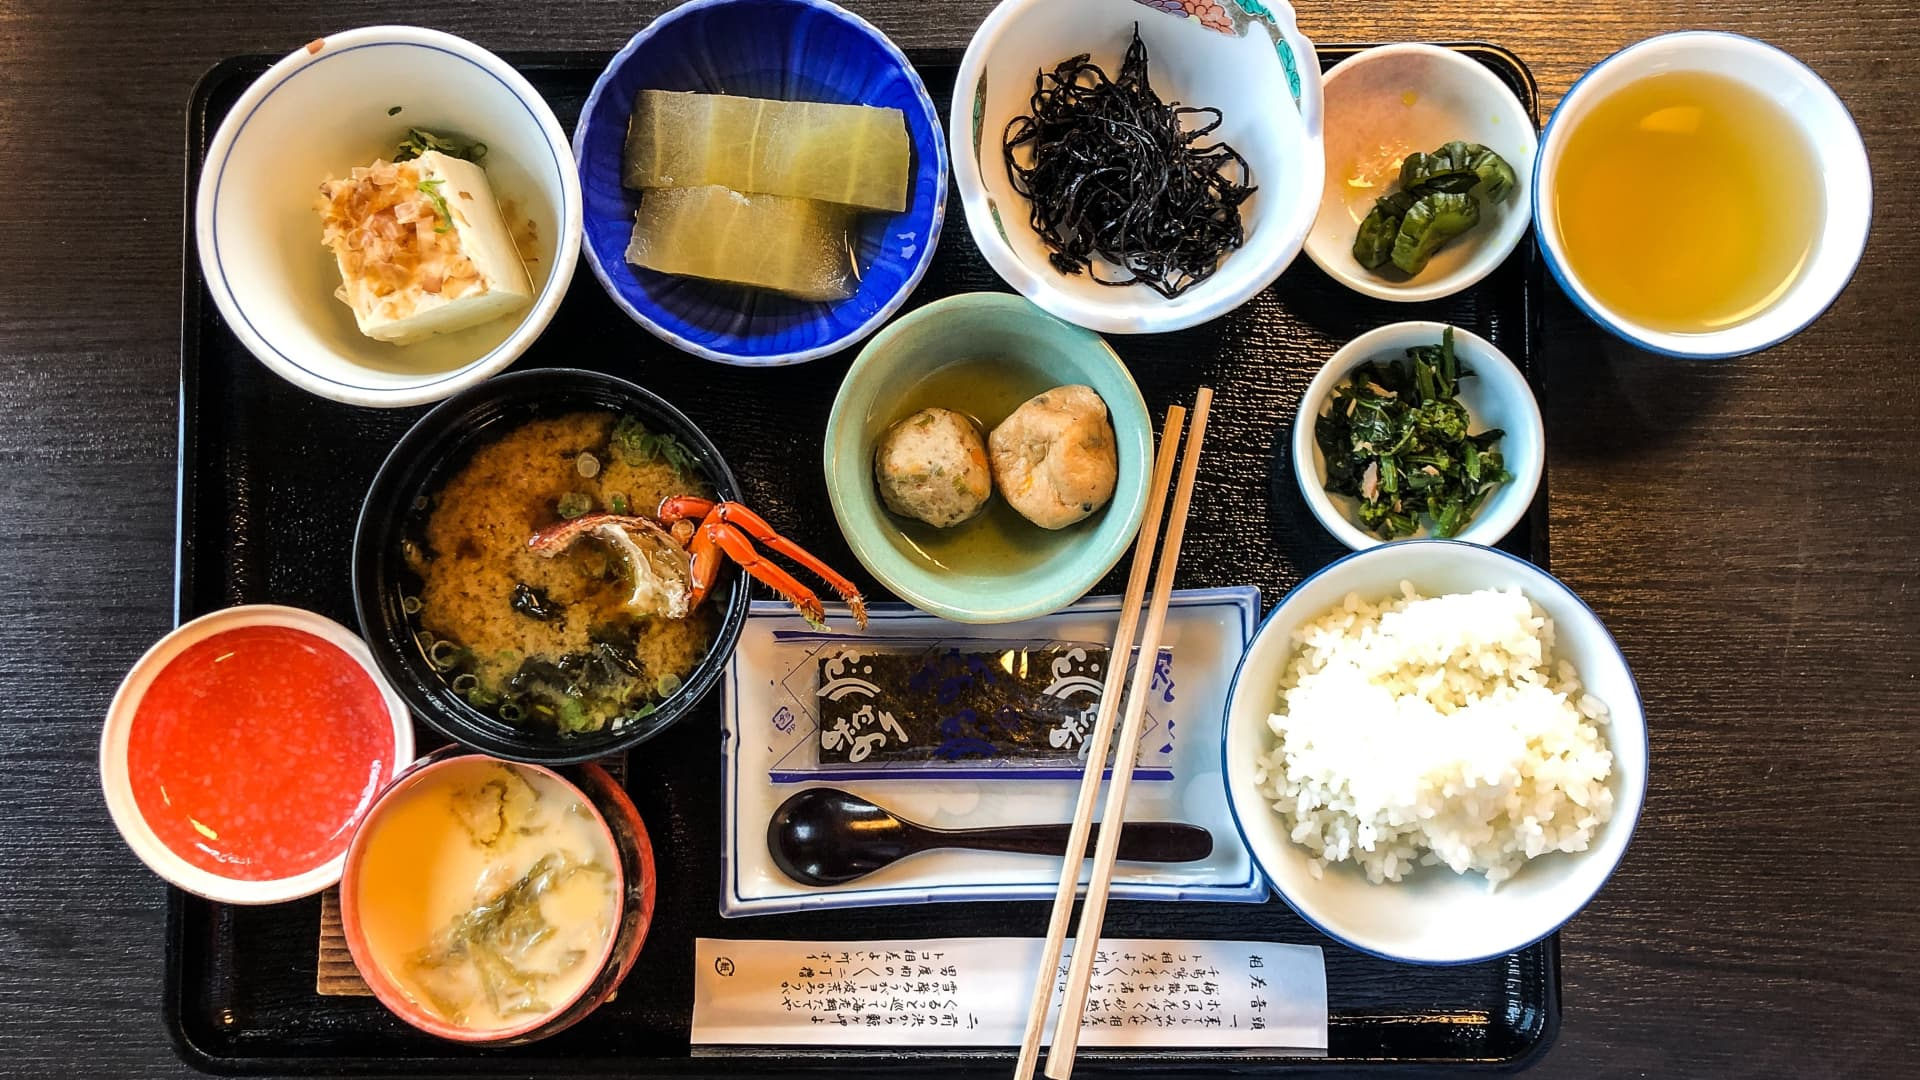 Kaiseki is a traditional multi-course Japanese dinner